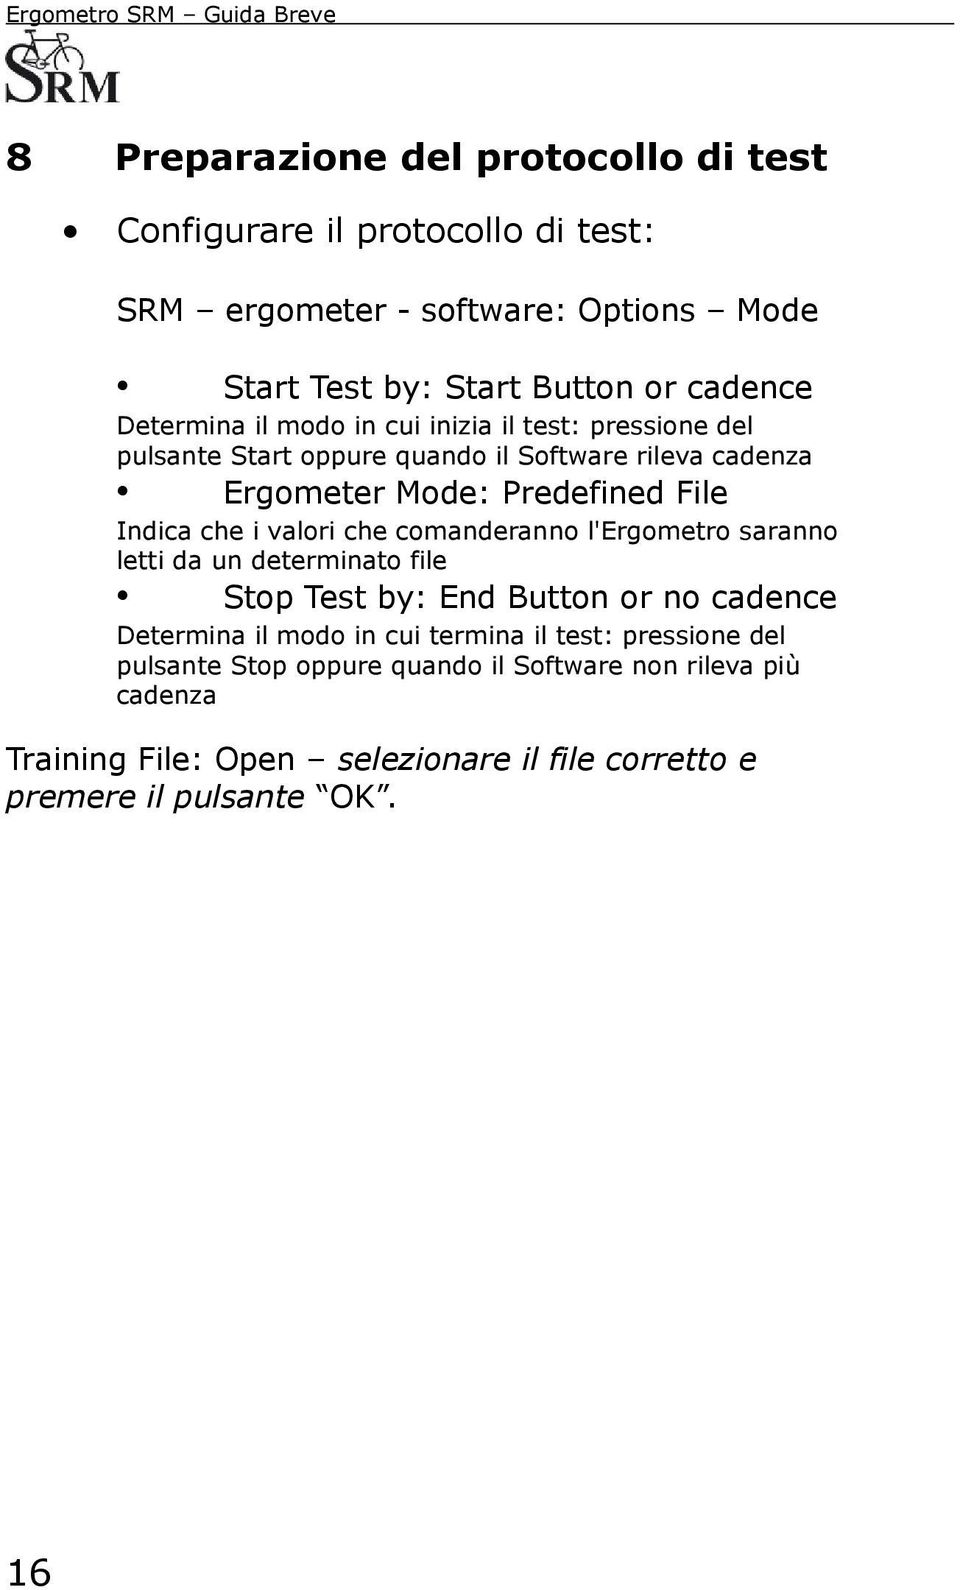 i valori che comanderanno l'ergometro saranno letti da un determinato file Stop Test by: End Button or no cadence Determina il modo in cui termina il